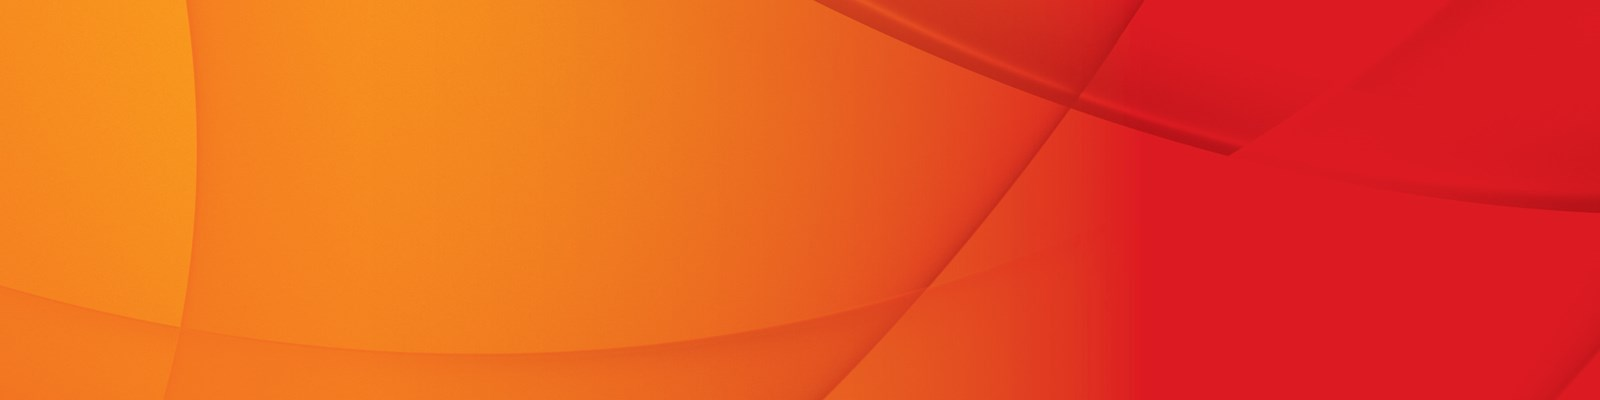 WACSSO-BACKGROUND-ORANGE for OLC.jpg